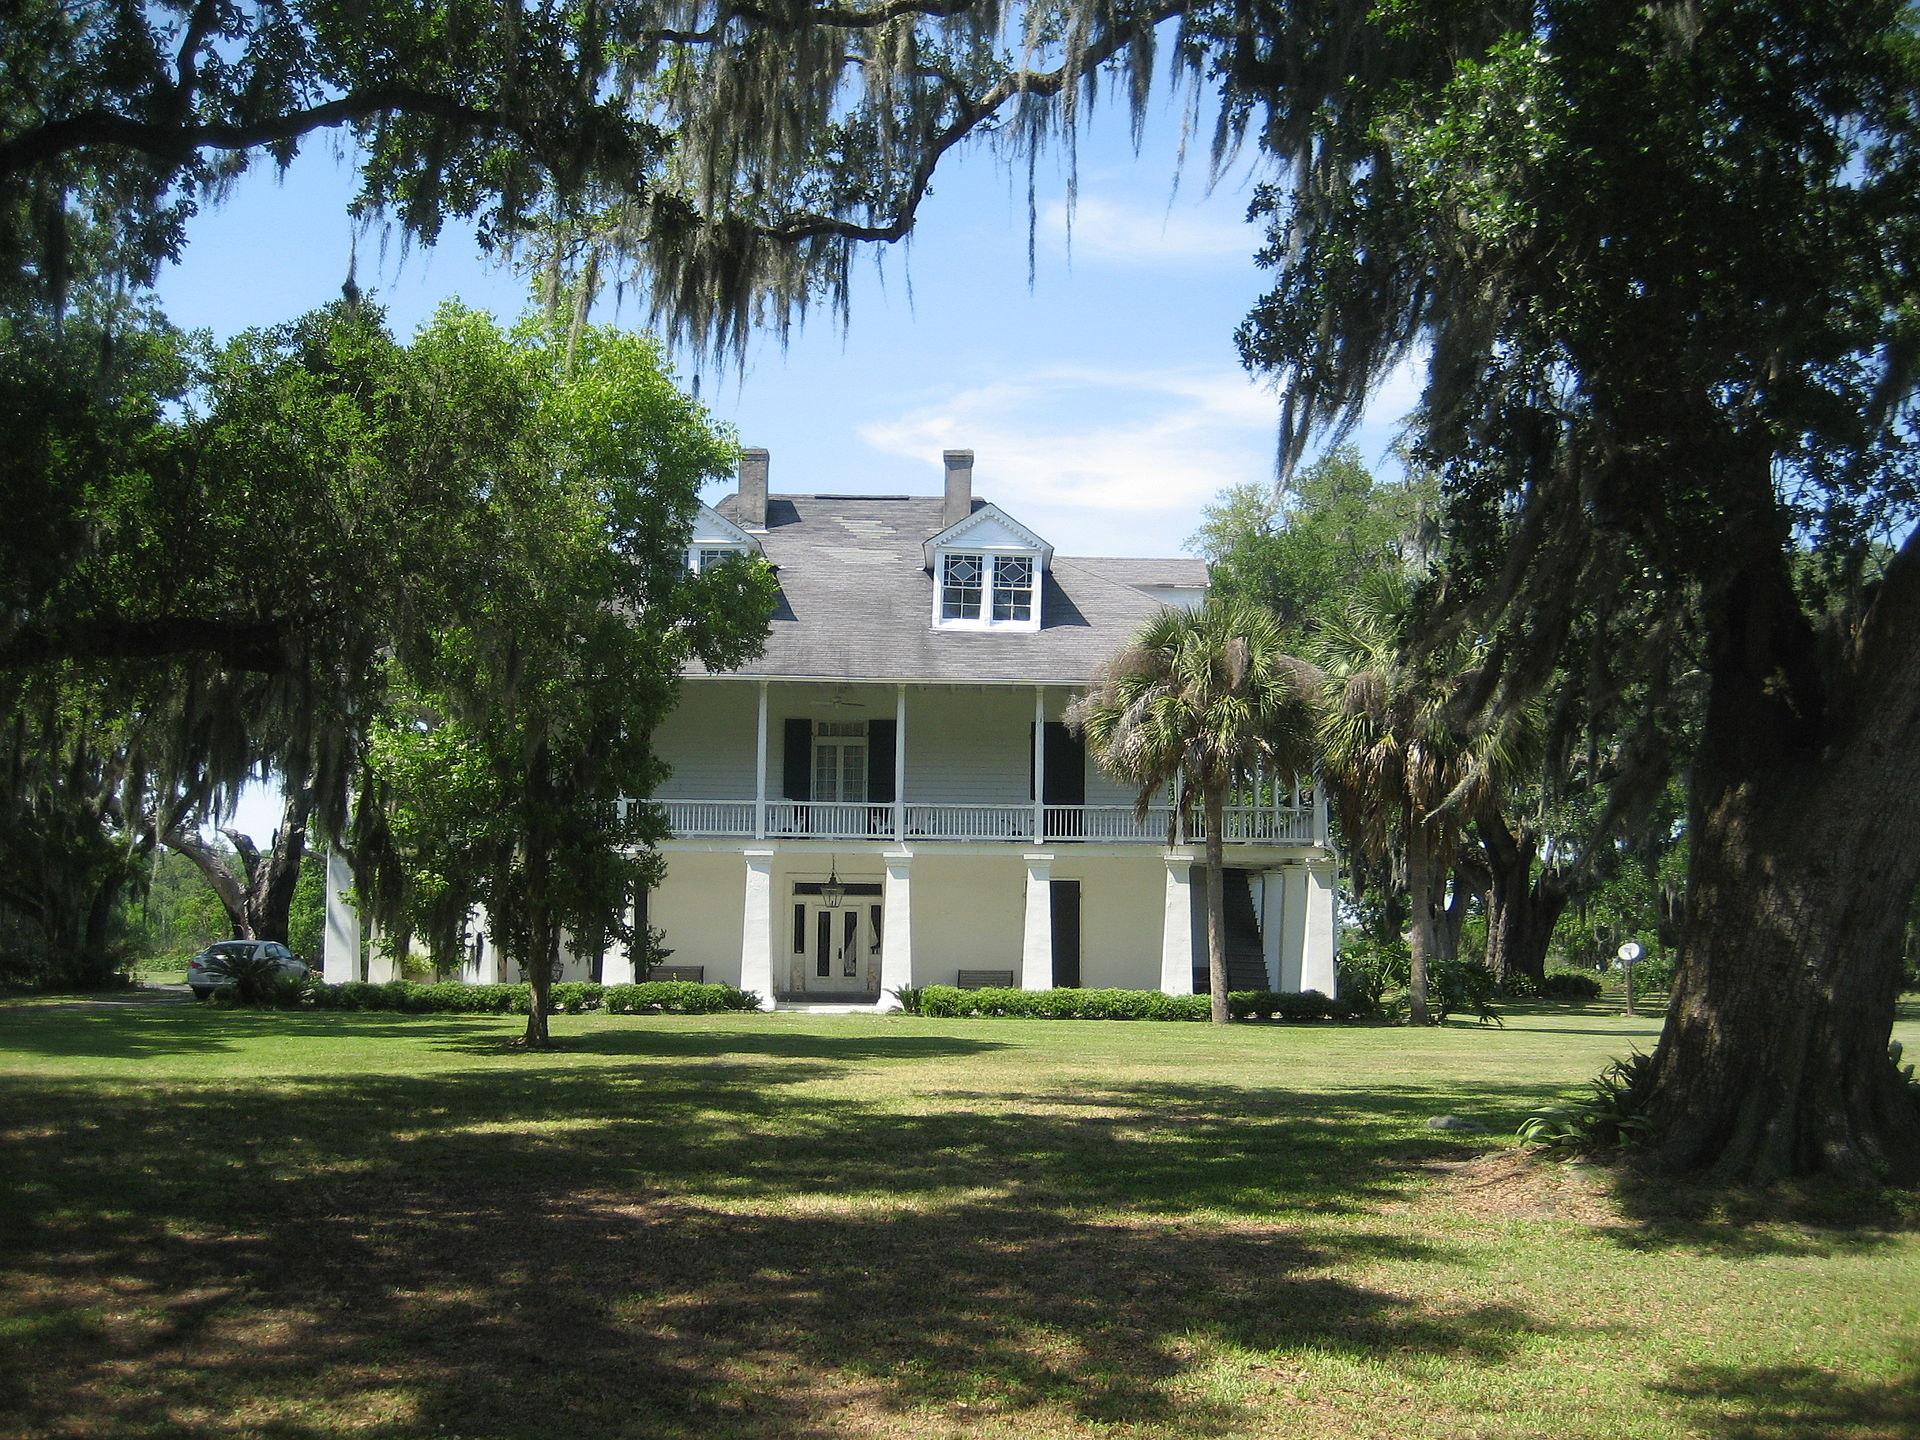 The Kenilworth Plantation House is the best remaining example of French Creole architecture in St. Bernard Parish.